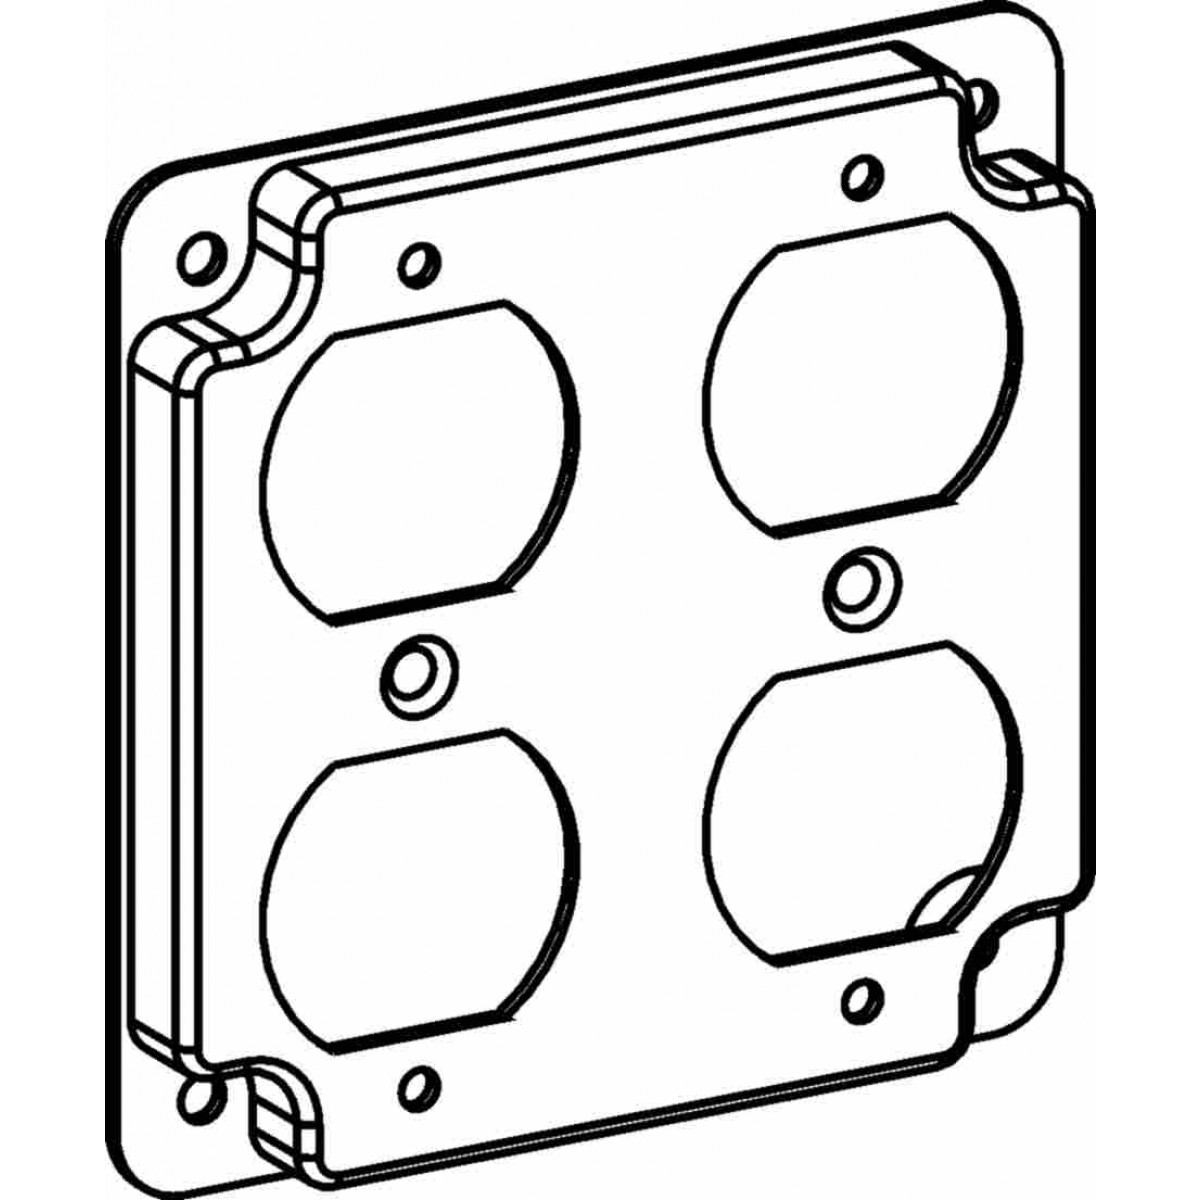 4 square junction box covers  4  free engine image for